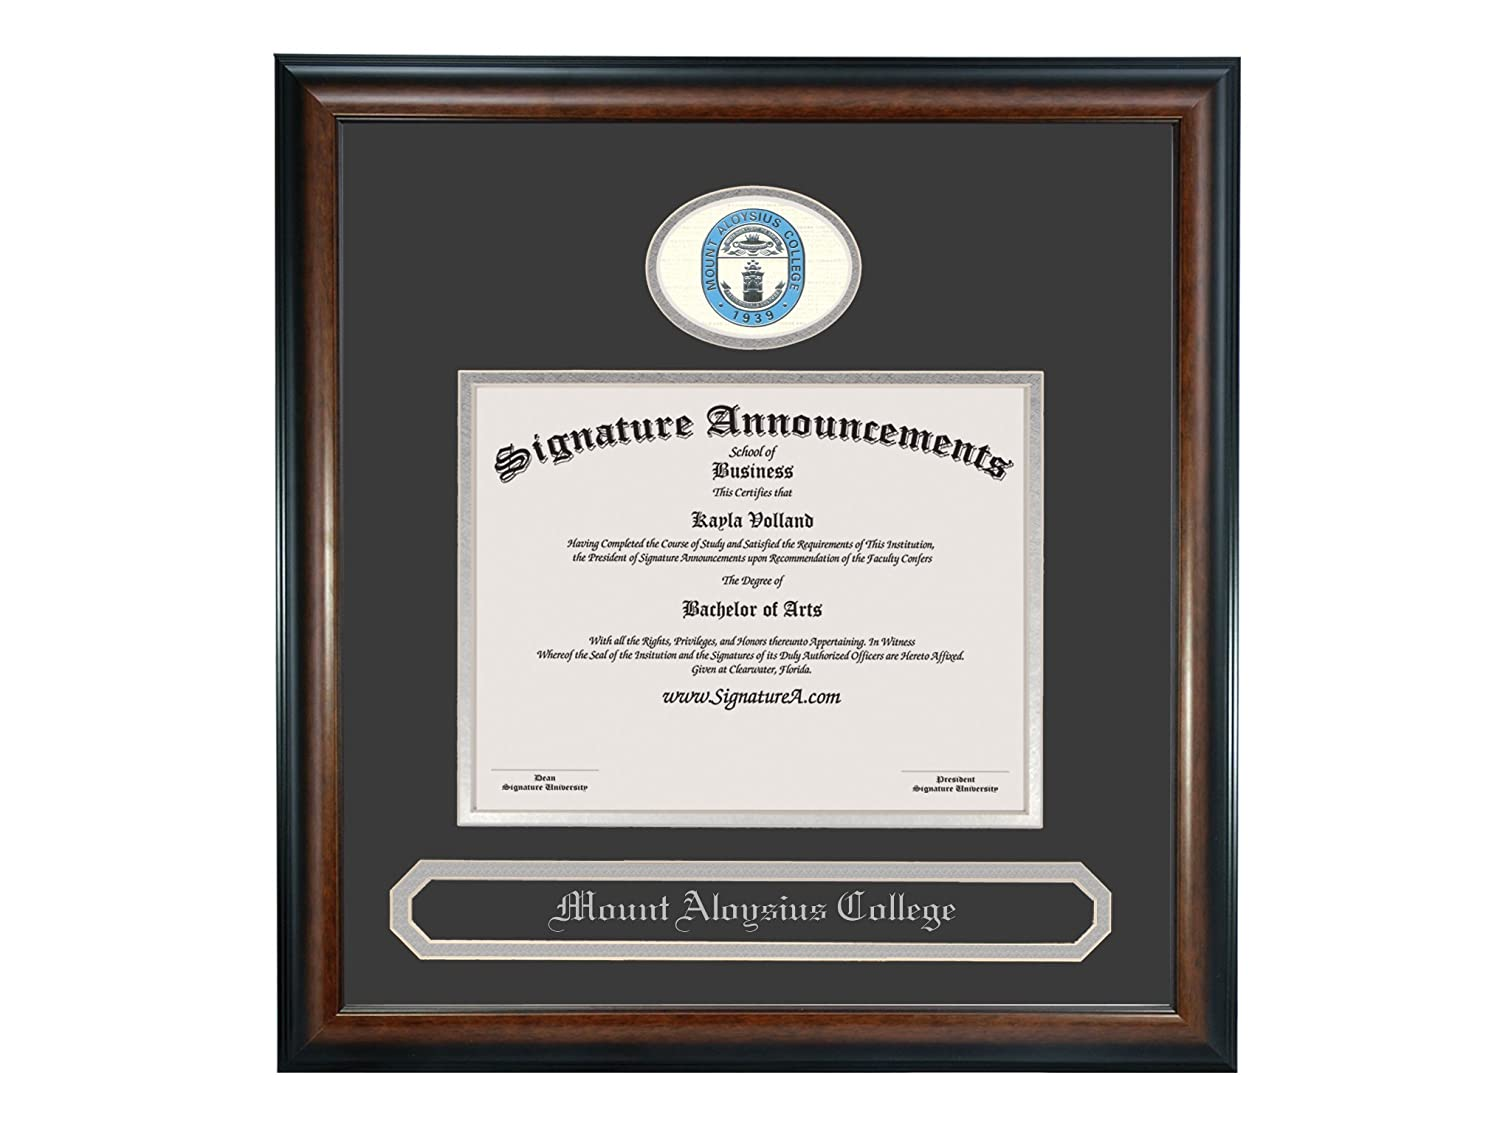 Matte Mahogany 16 x 16 Signature Announcements Mount Aloysius College Undergraduate Sculpted Foil Seal /& Name Graduation Diploma Frame